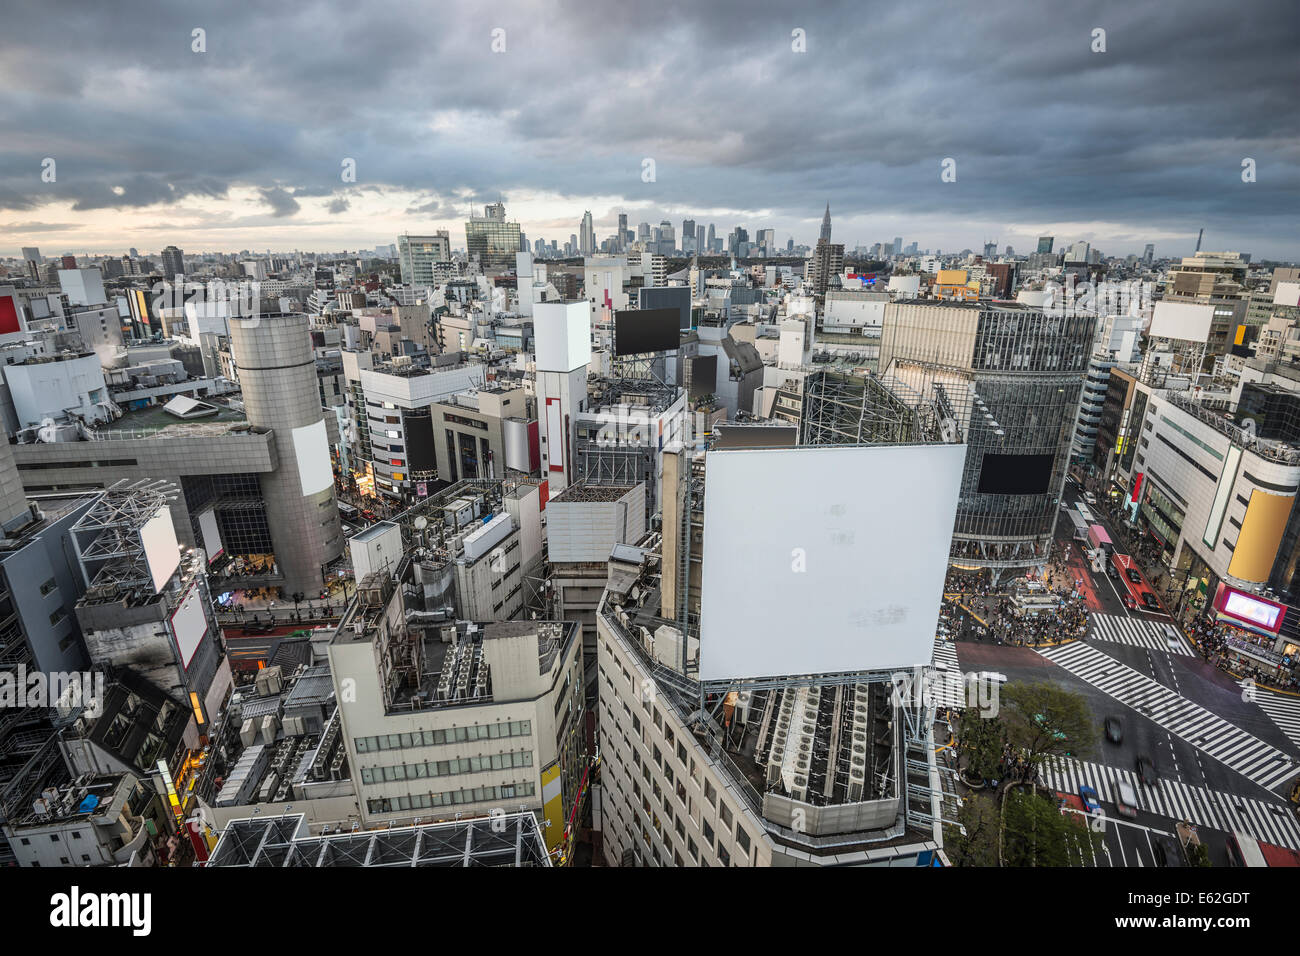 Aerial view over Shibuya Ward in Tokyo, Japan. - Stock Image